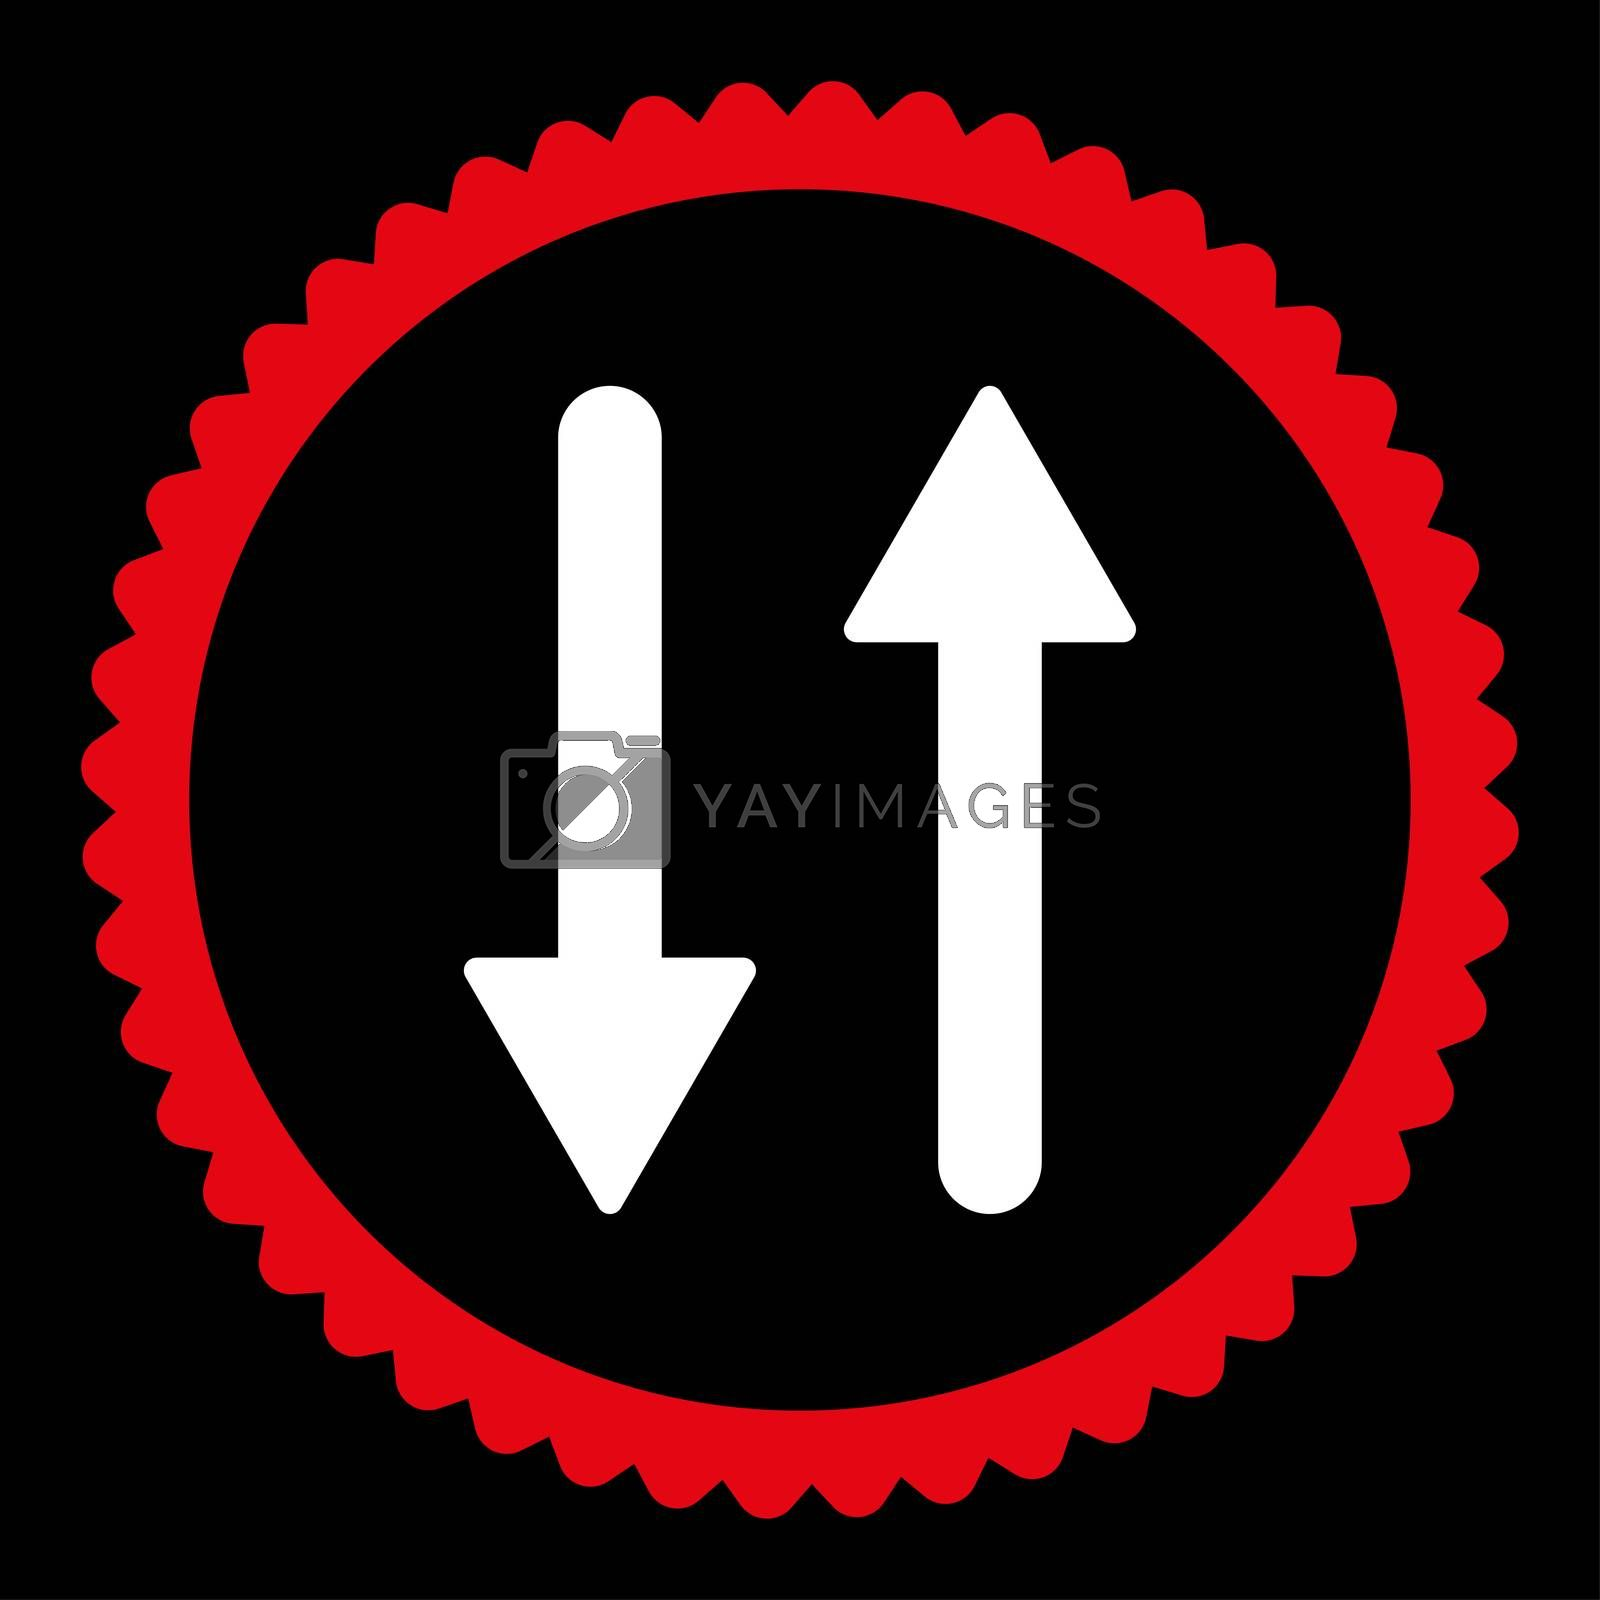 Arrows Exchange Vertical flat red and white colors round stamp icon by Aha-Soft